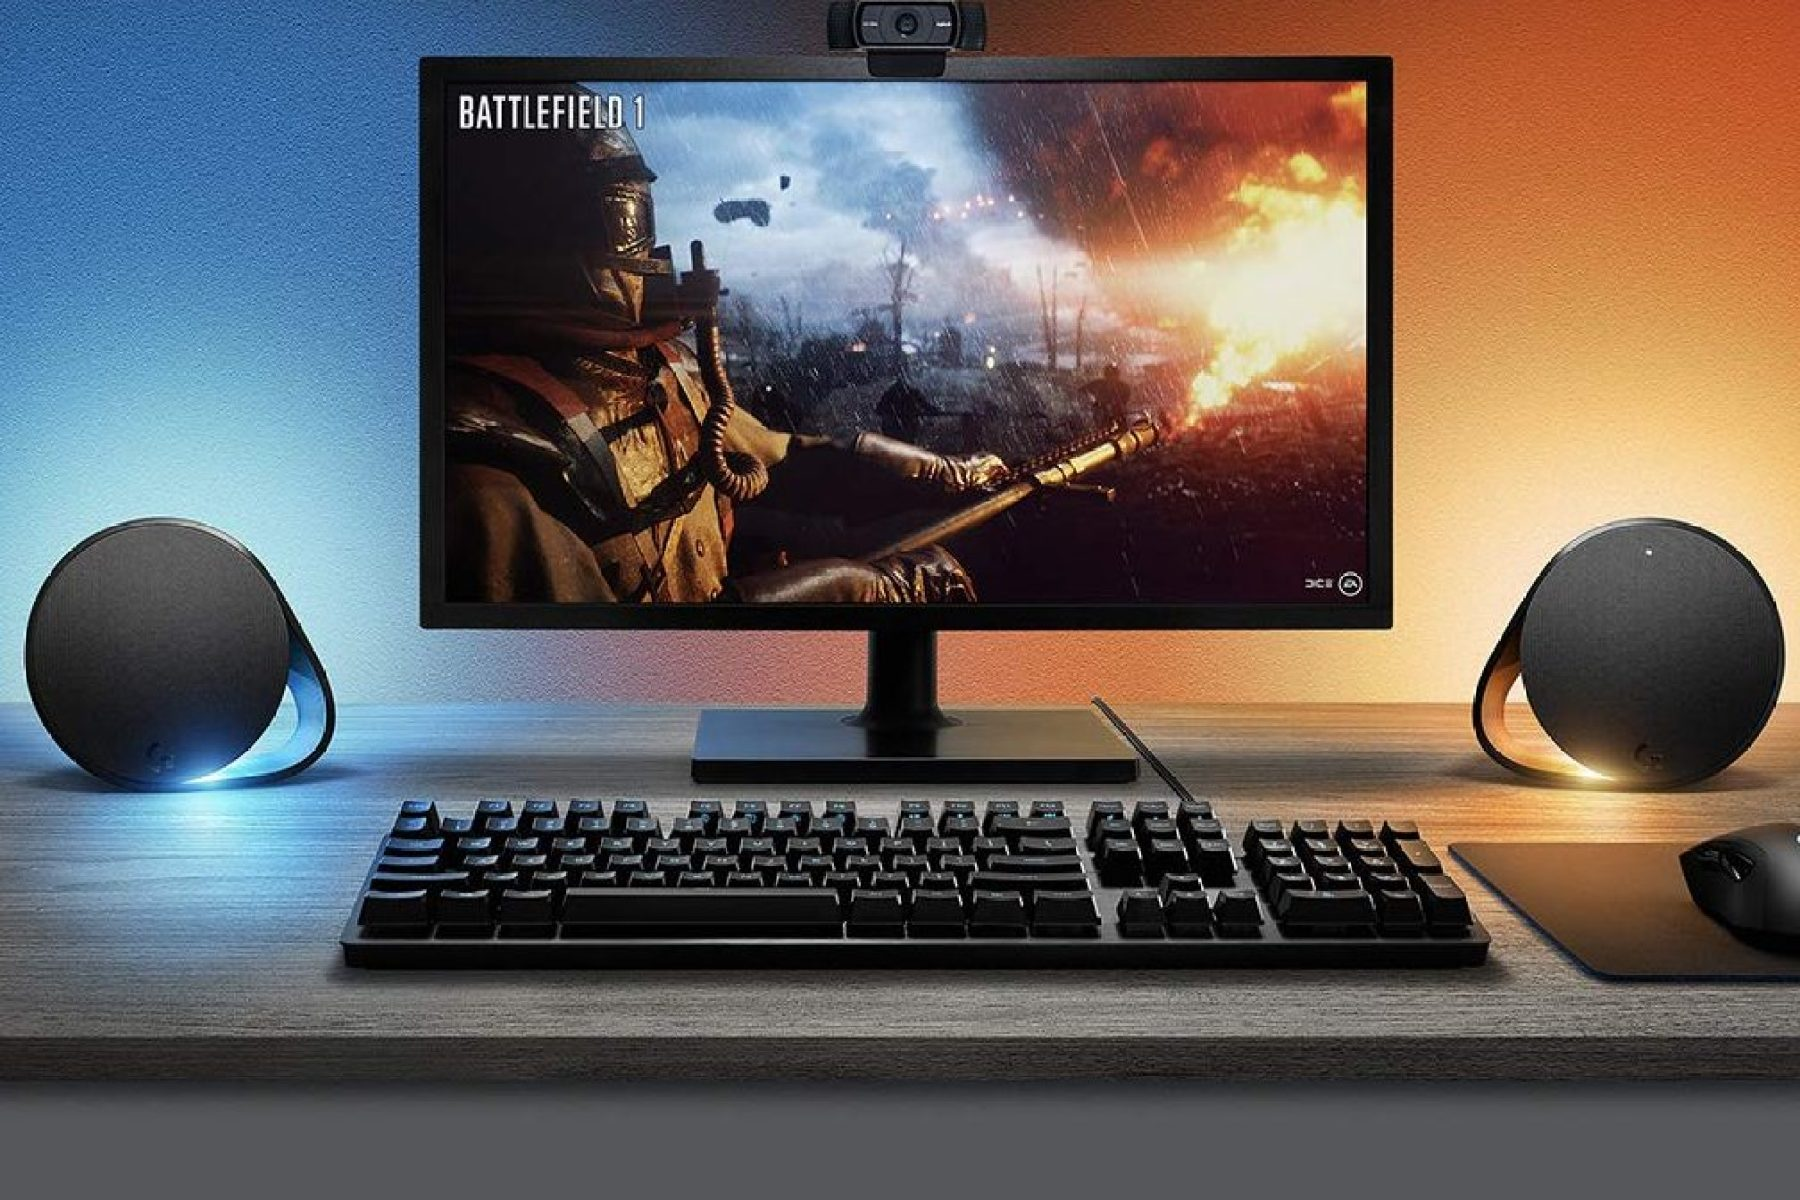 Best Gaming Speakers 2021 The Best PC Gaming Speakers 2020: Latest Reviews, Buying Guide